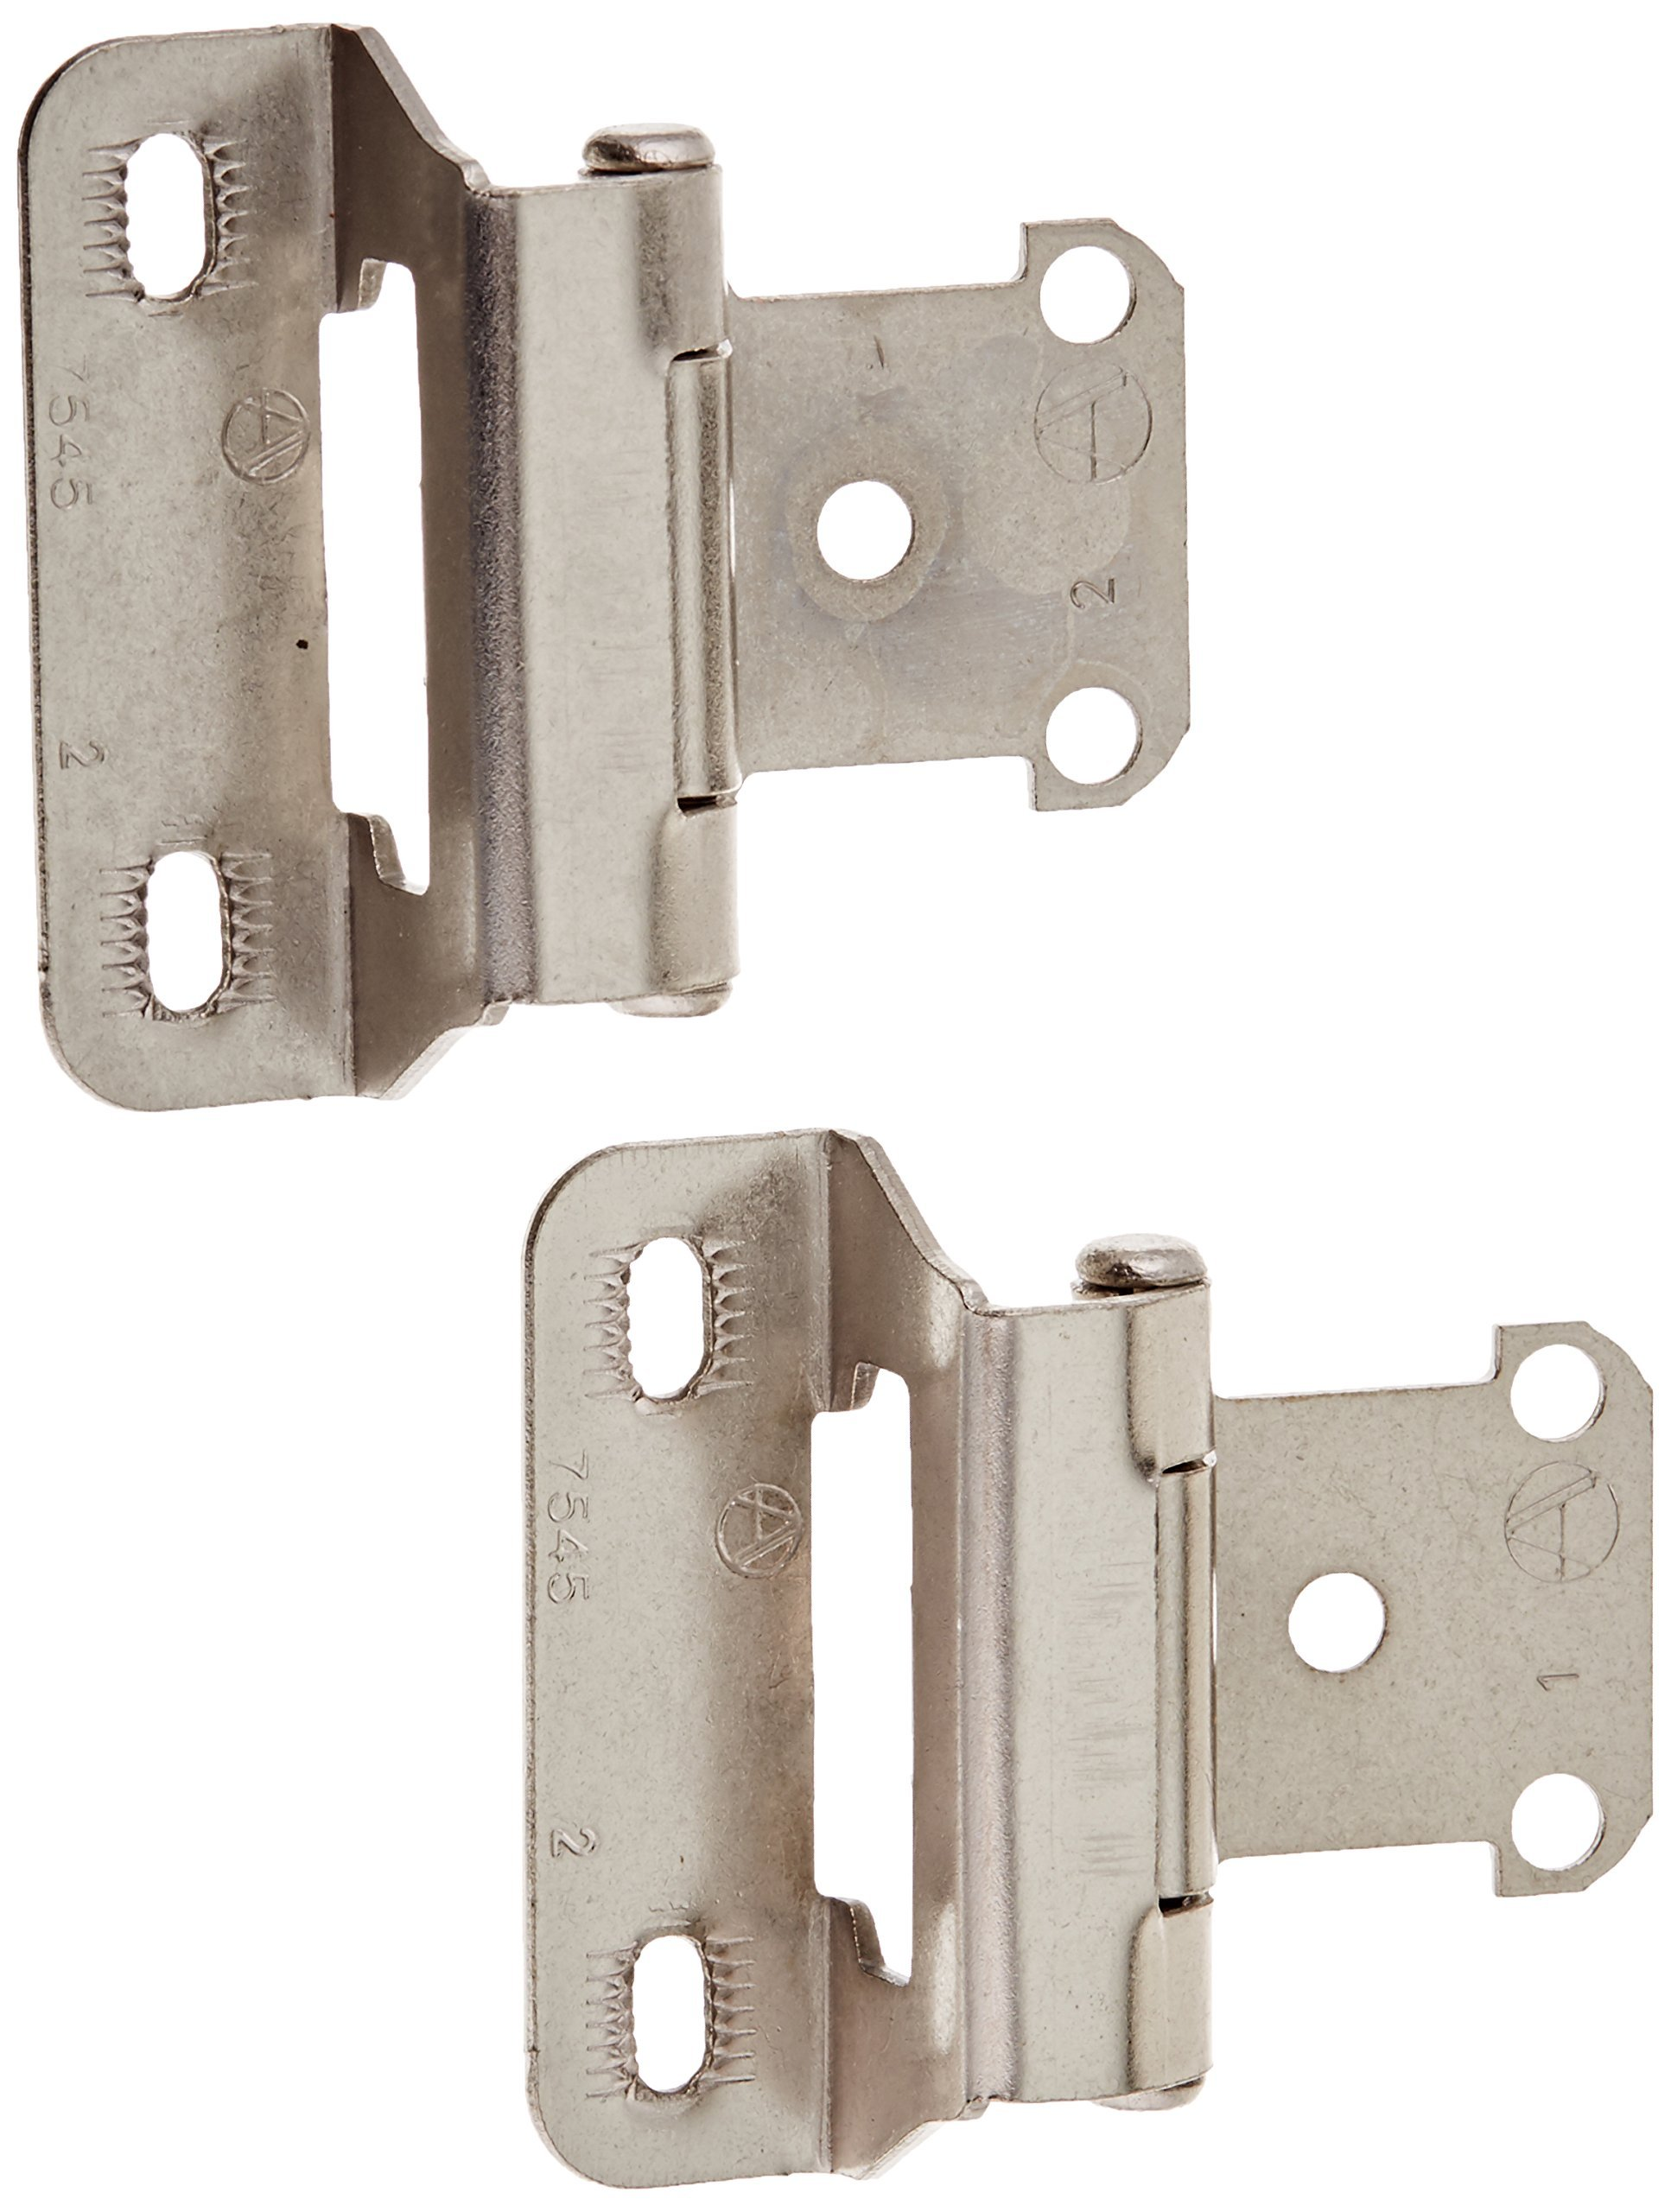 Amerock BP7566G10 12 Pack Self-closing Partial Wrap 1/4in. Overlay Hinge, Satin Nickel